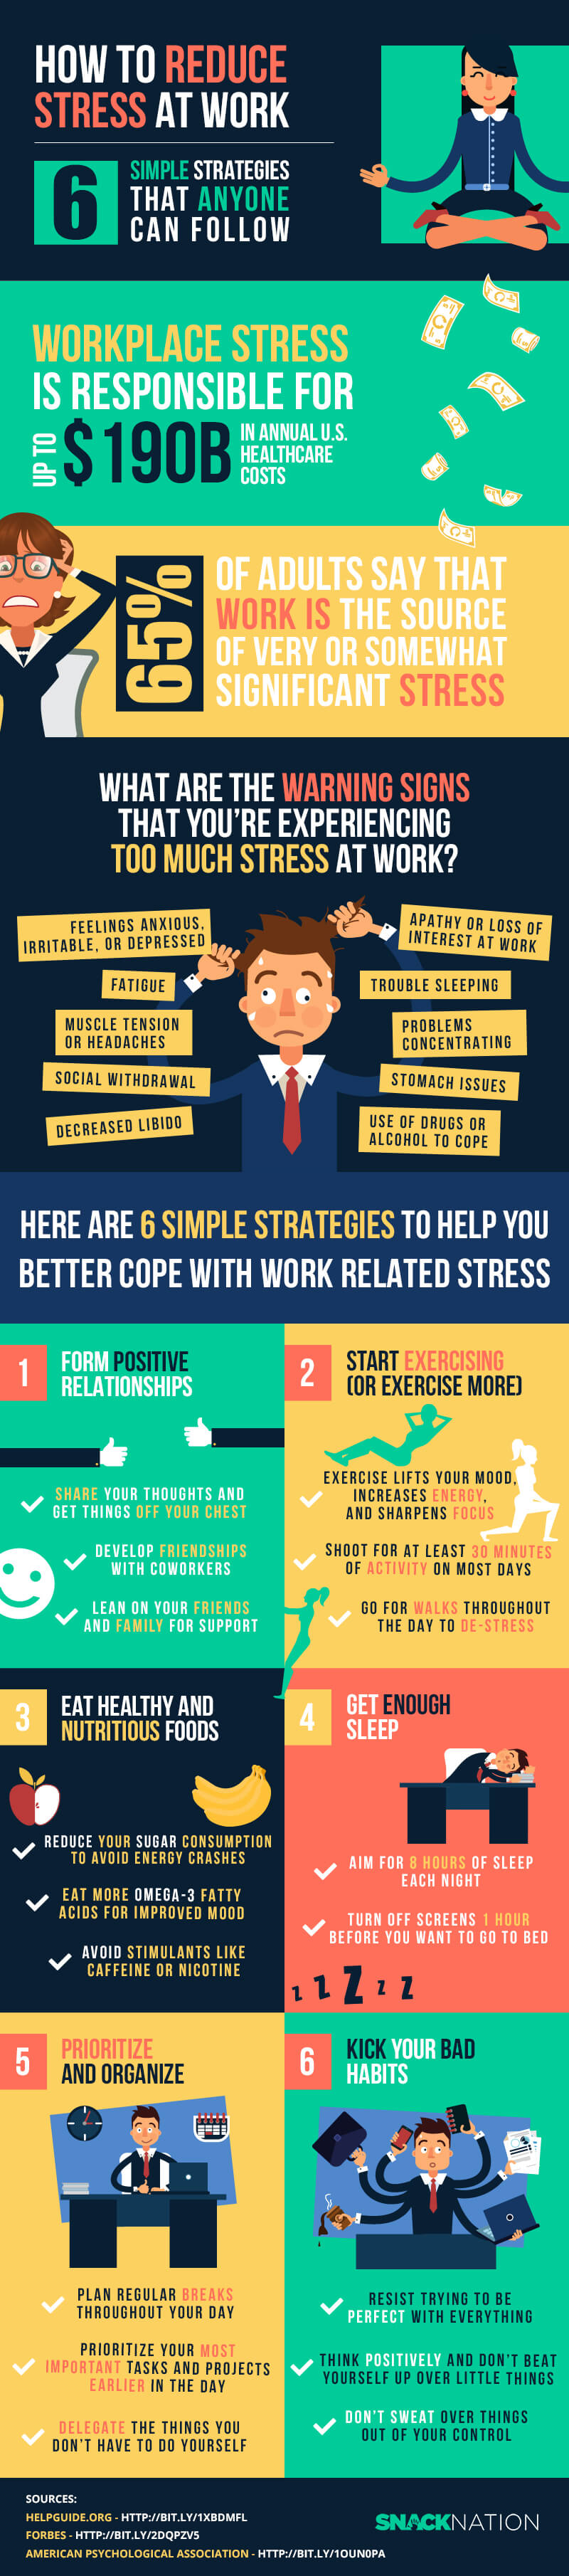 How To Reduce Stress At Work Cma